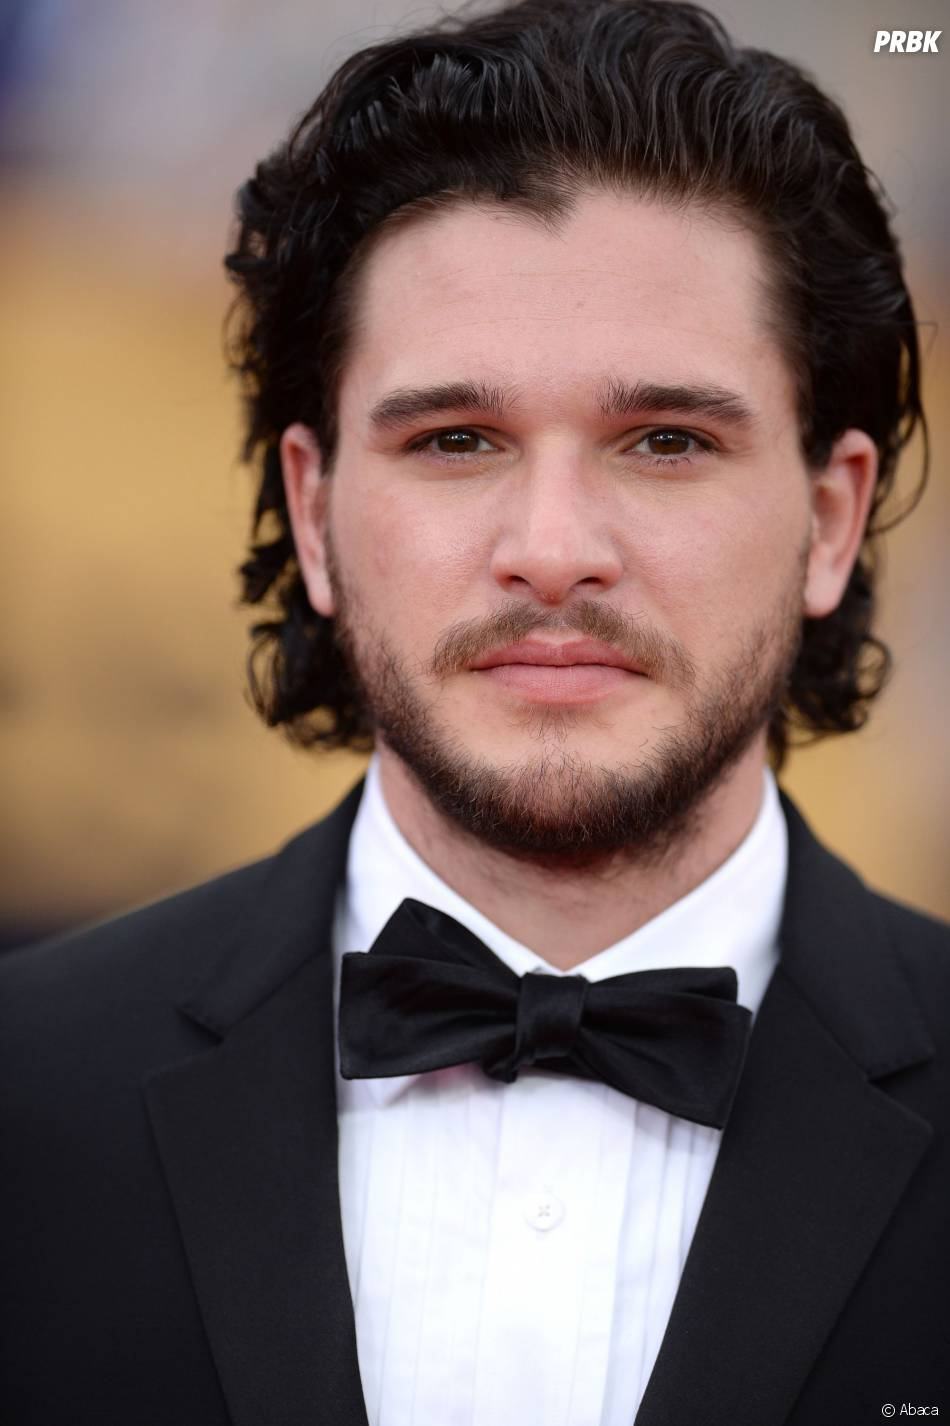 Kit Harington aux SAG Awards 2015, le 25 janvier 2015 à Los Angeles